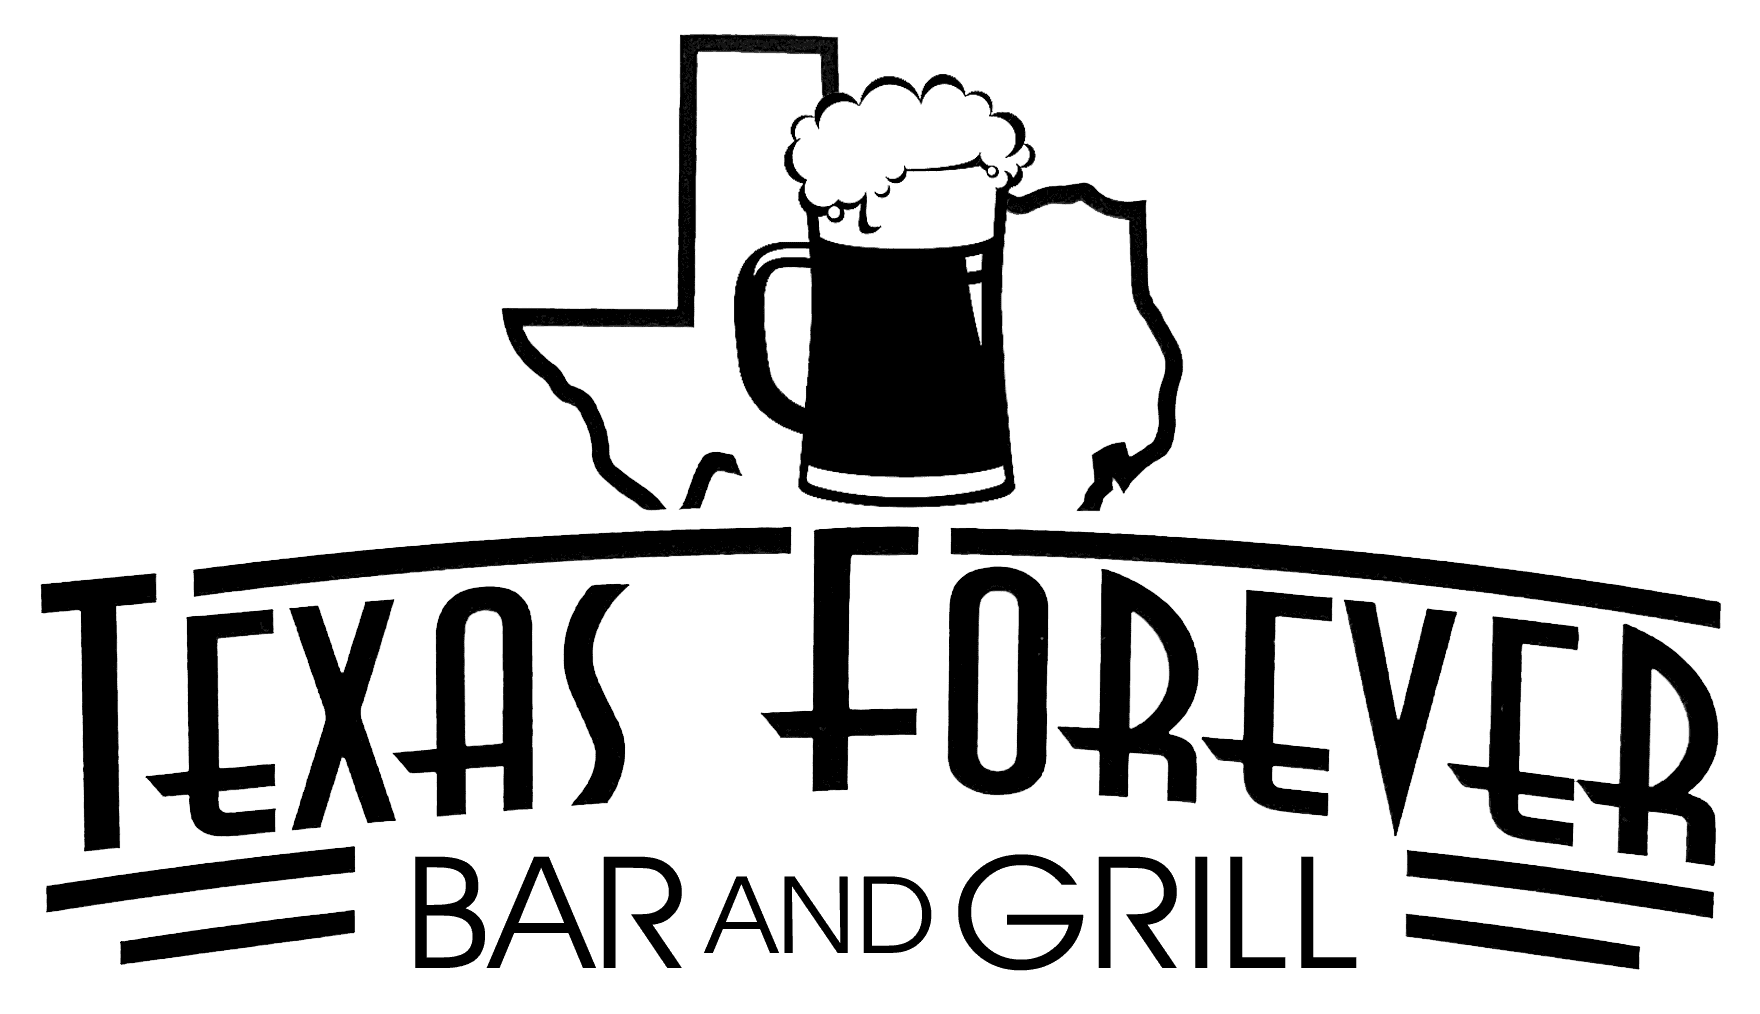 Texas Forever Cafe And Restaurant